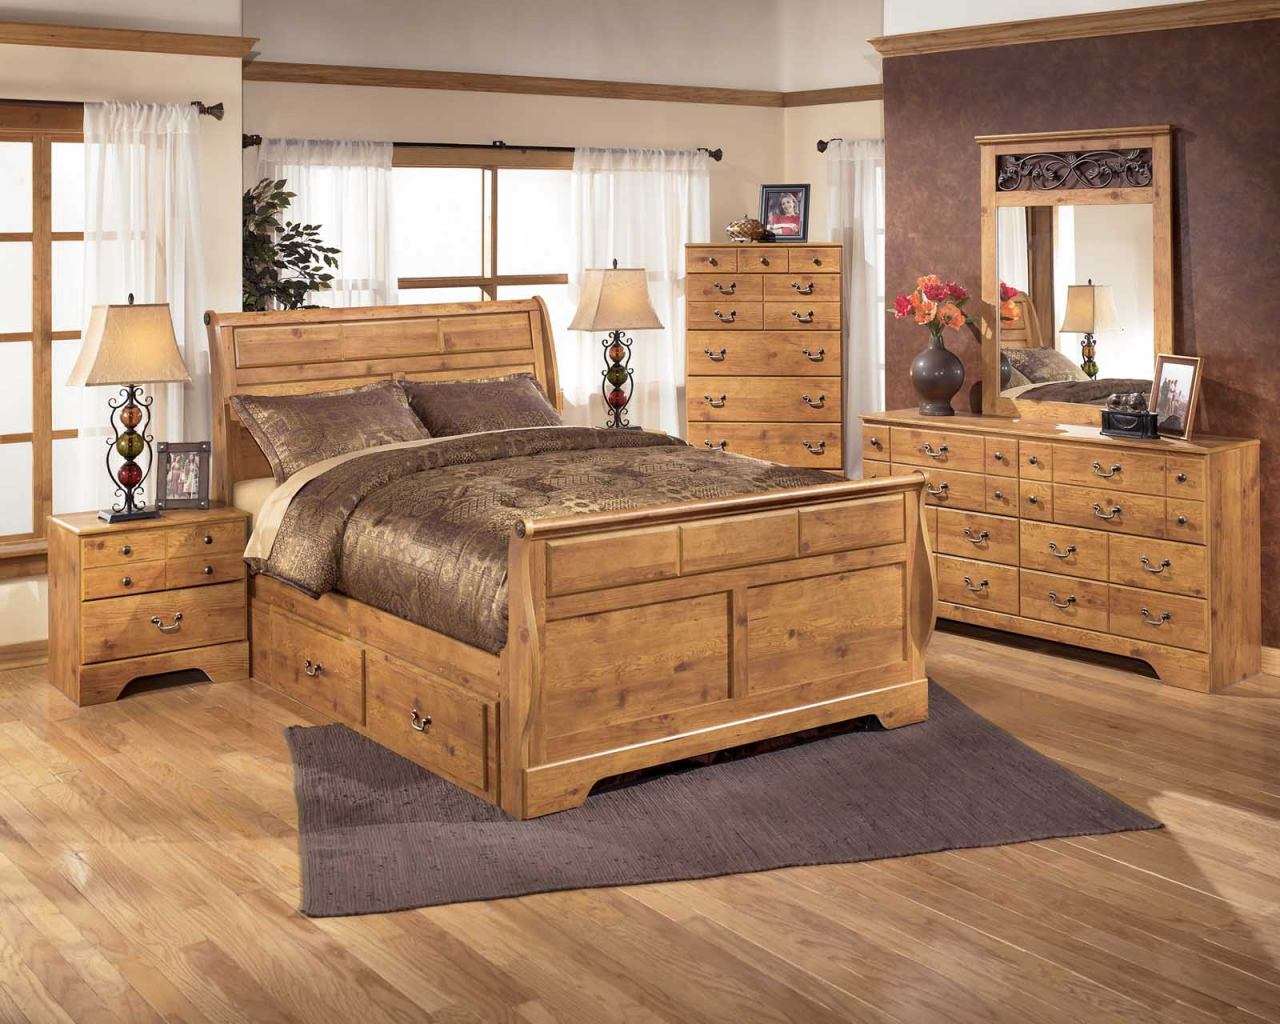 Bittersweet Sleigh Bedroom Set with Underbed Storage in Pine Grain